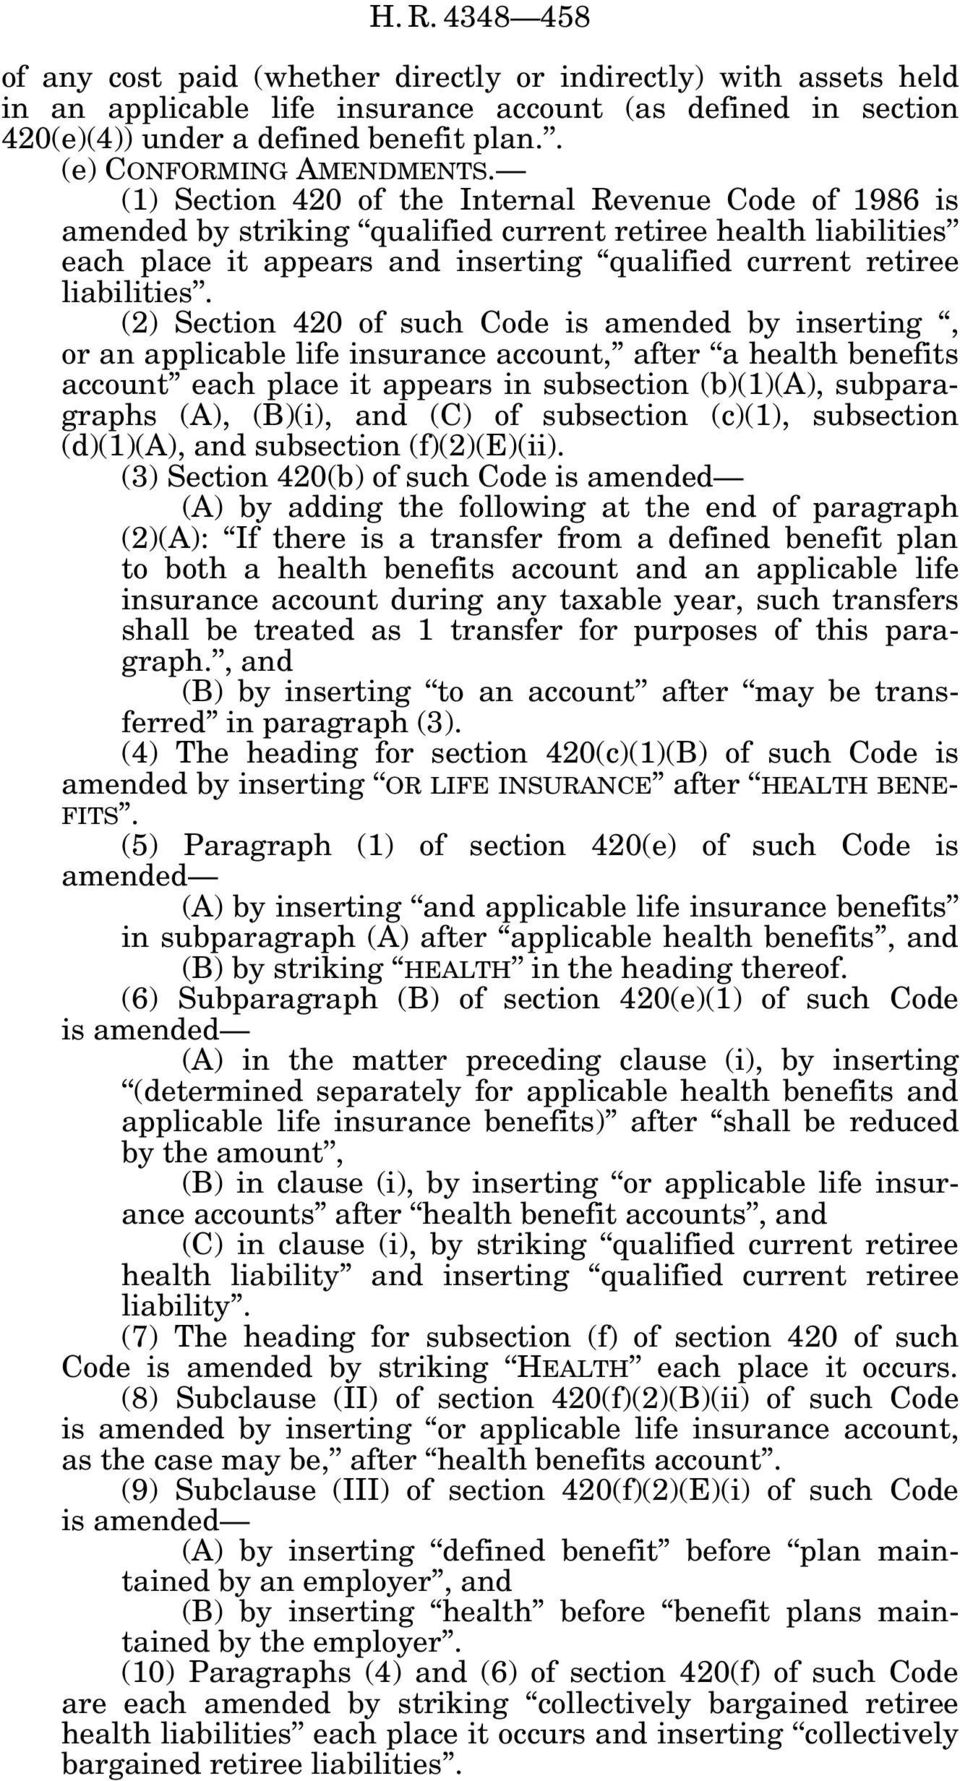 (1) Section 420 of the Internal Revenue Code of 1986 is amended by striking qualified current retiree health liabilities each place it appears inserting qualified current retiree liabilities.